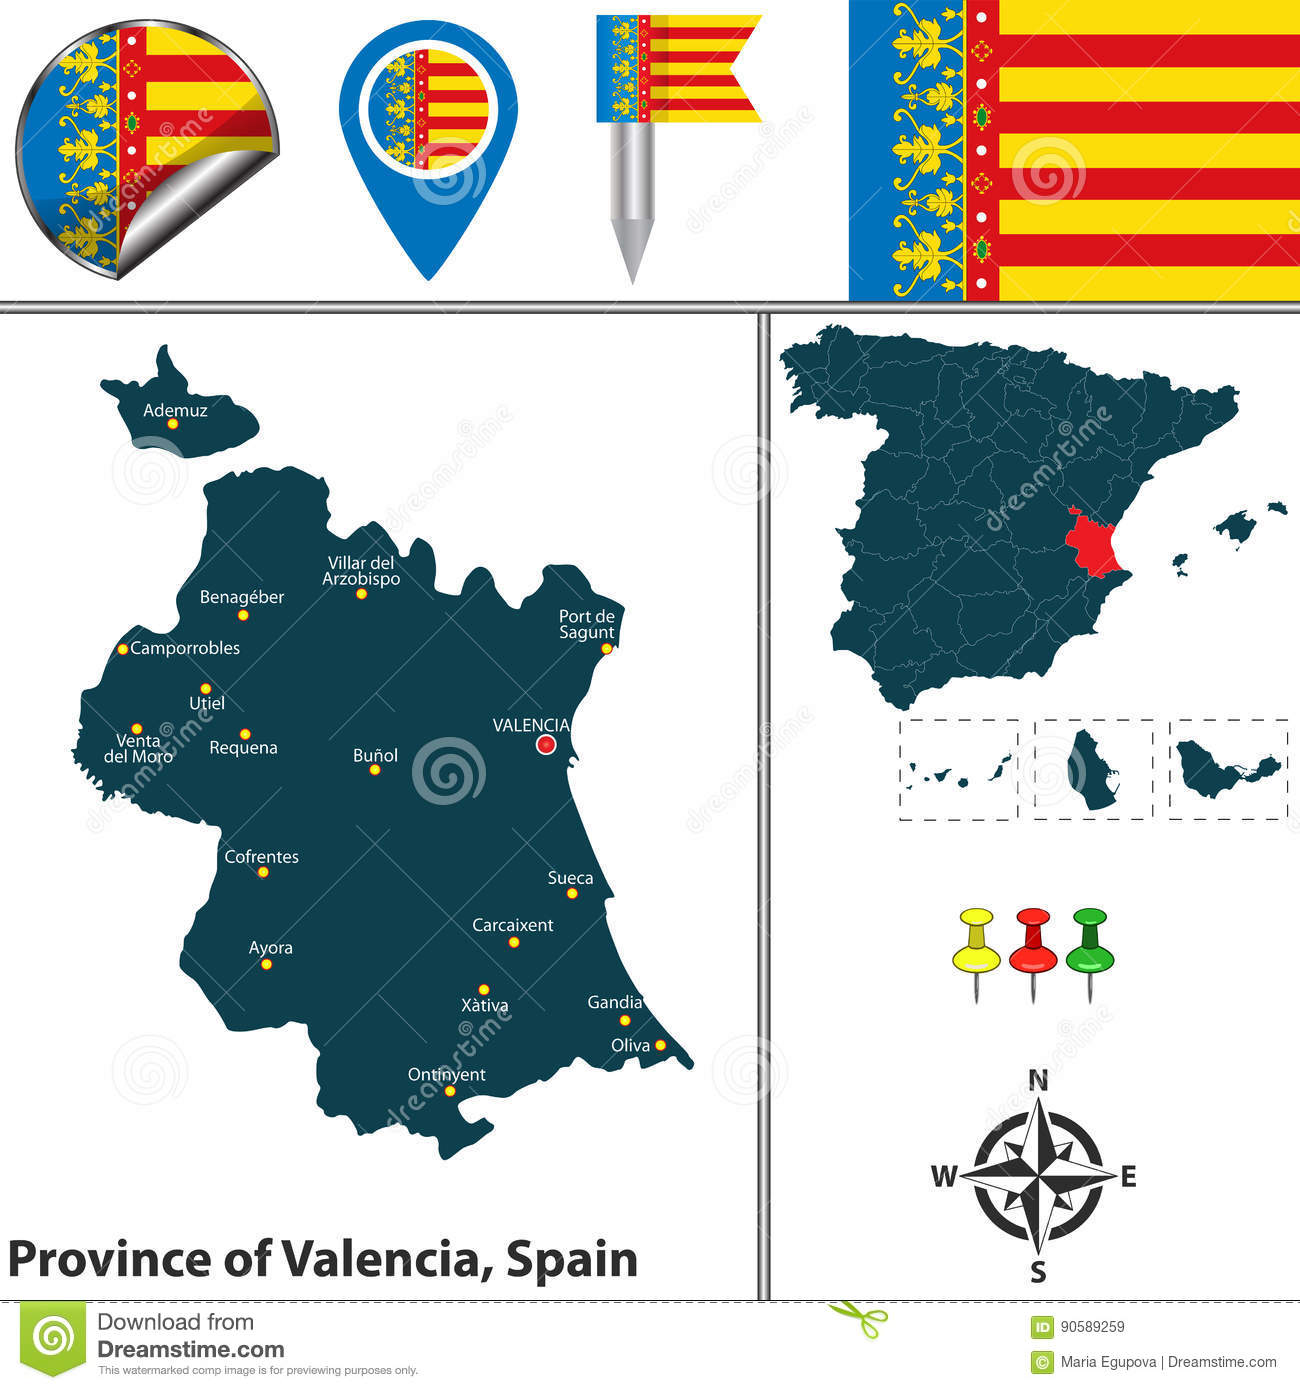 Map Of Spain By Province.Province Of Valencia Spain Stock Vector Illustration Of